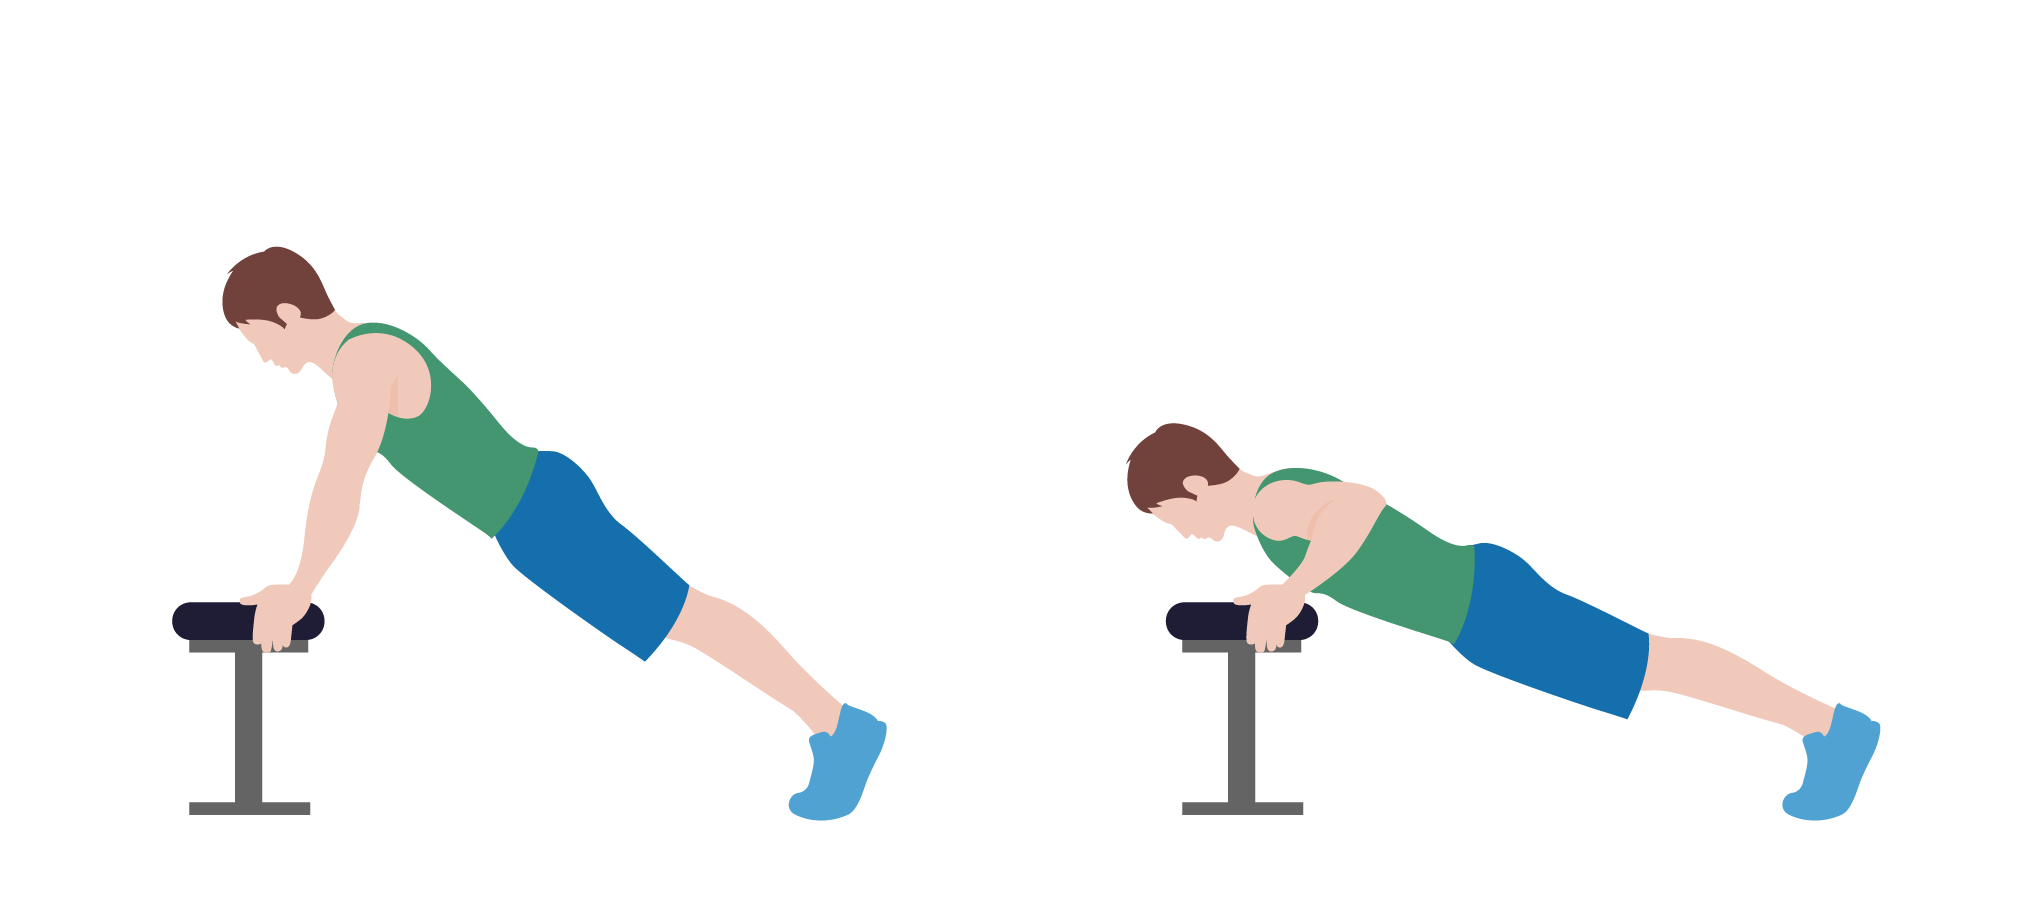 Dumbbell clipart arm workout. The ultimate guide to